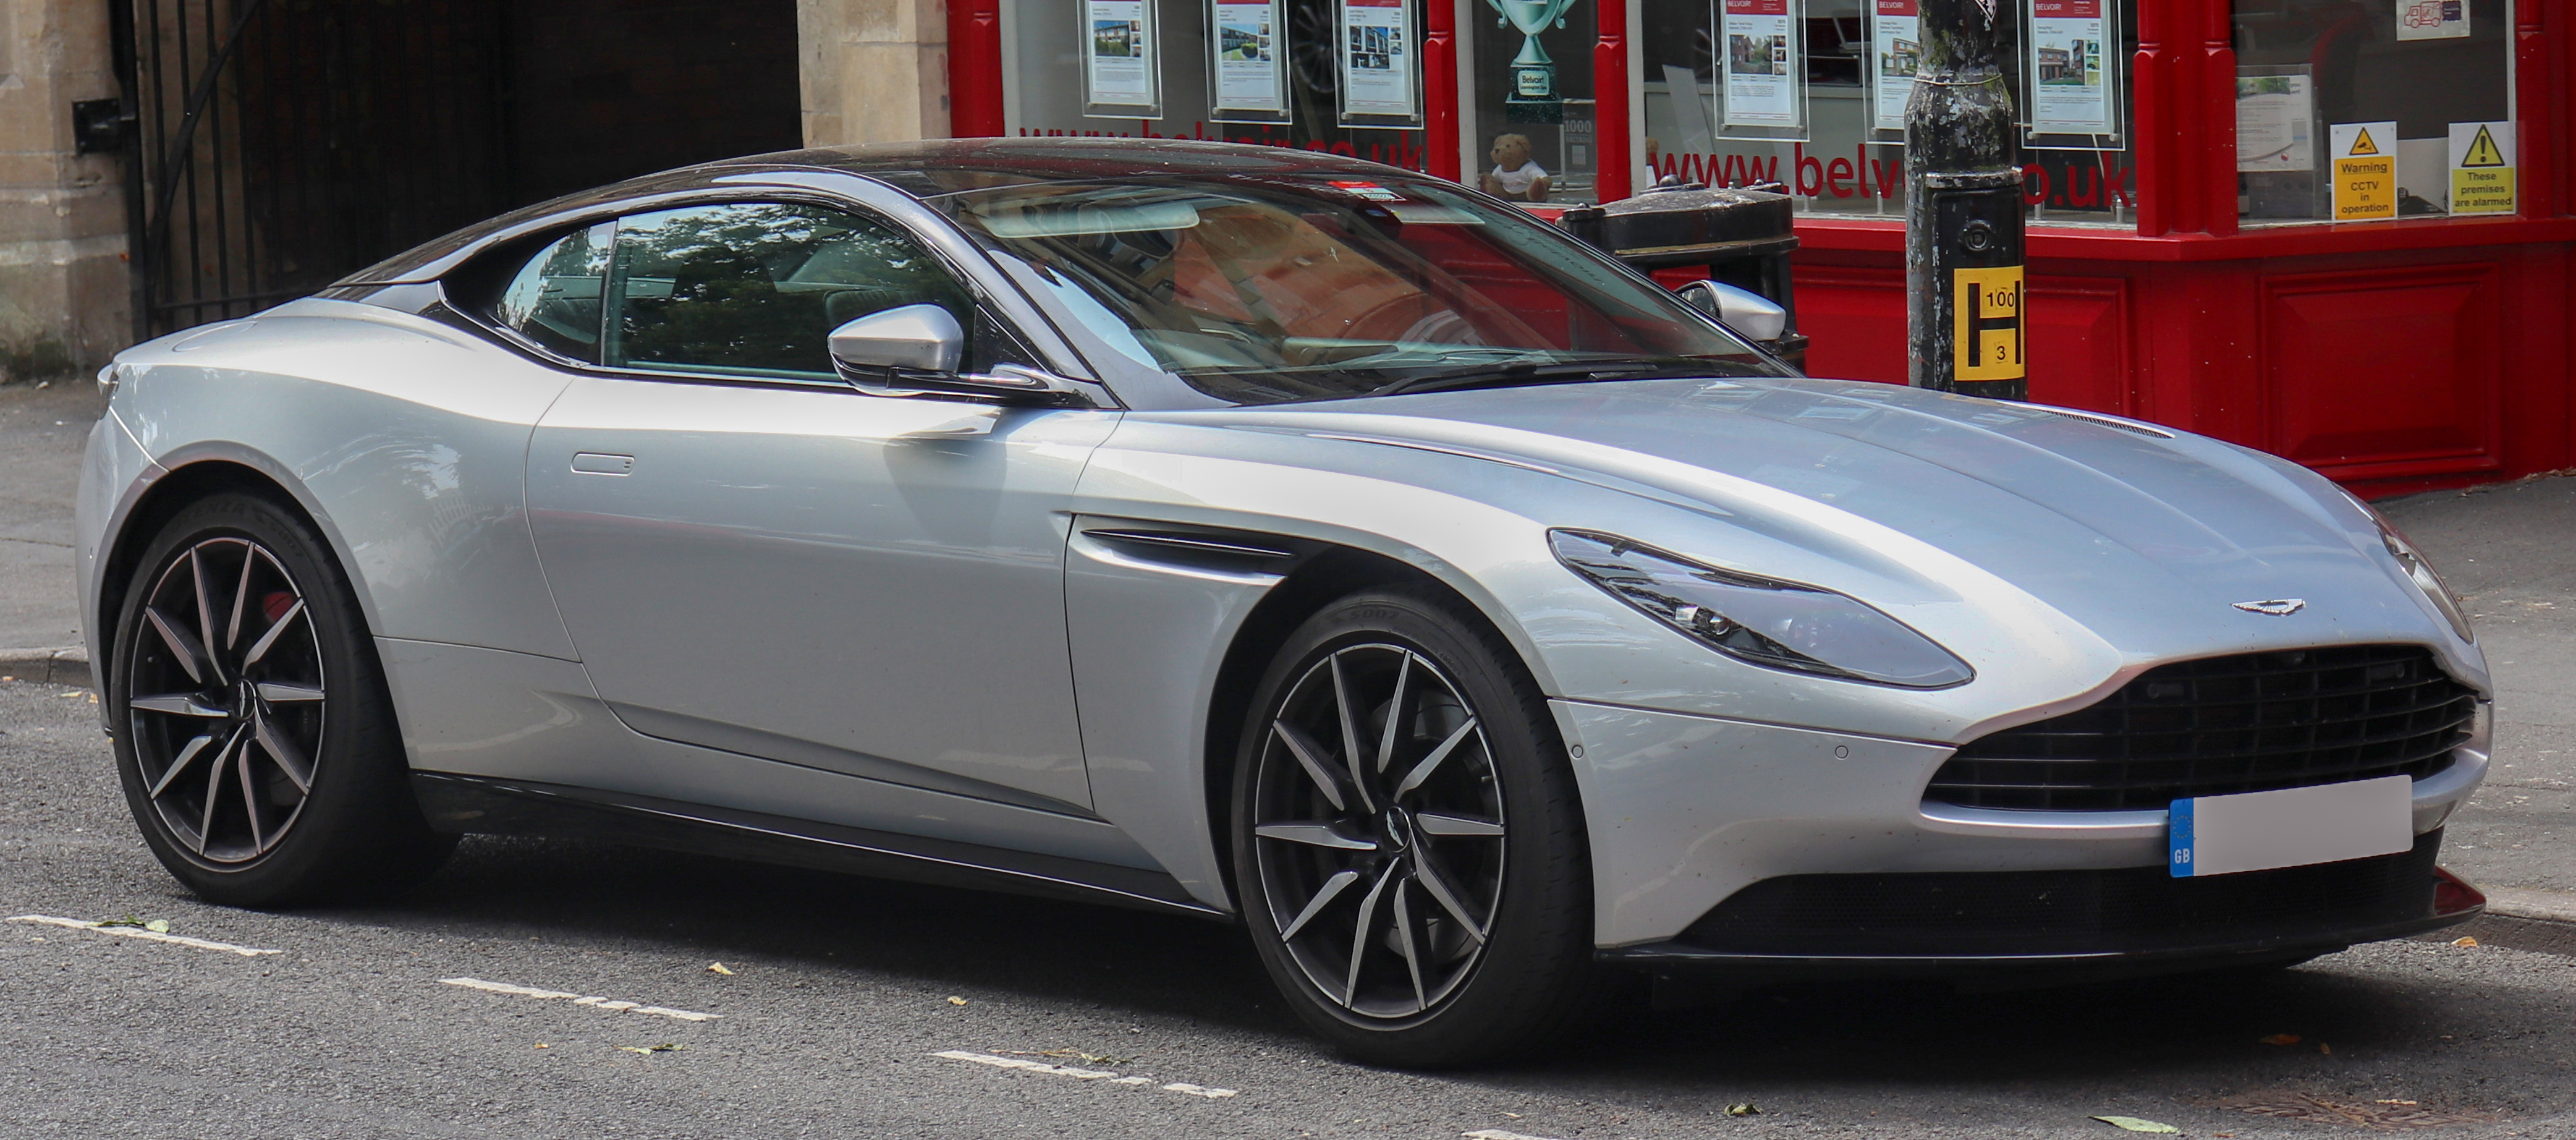 Aston Martin DB12 - Wikipedia | aston martin parts online